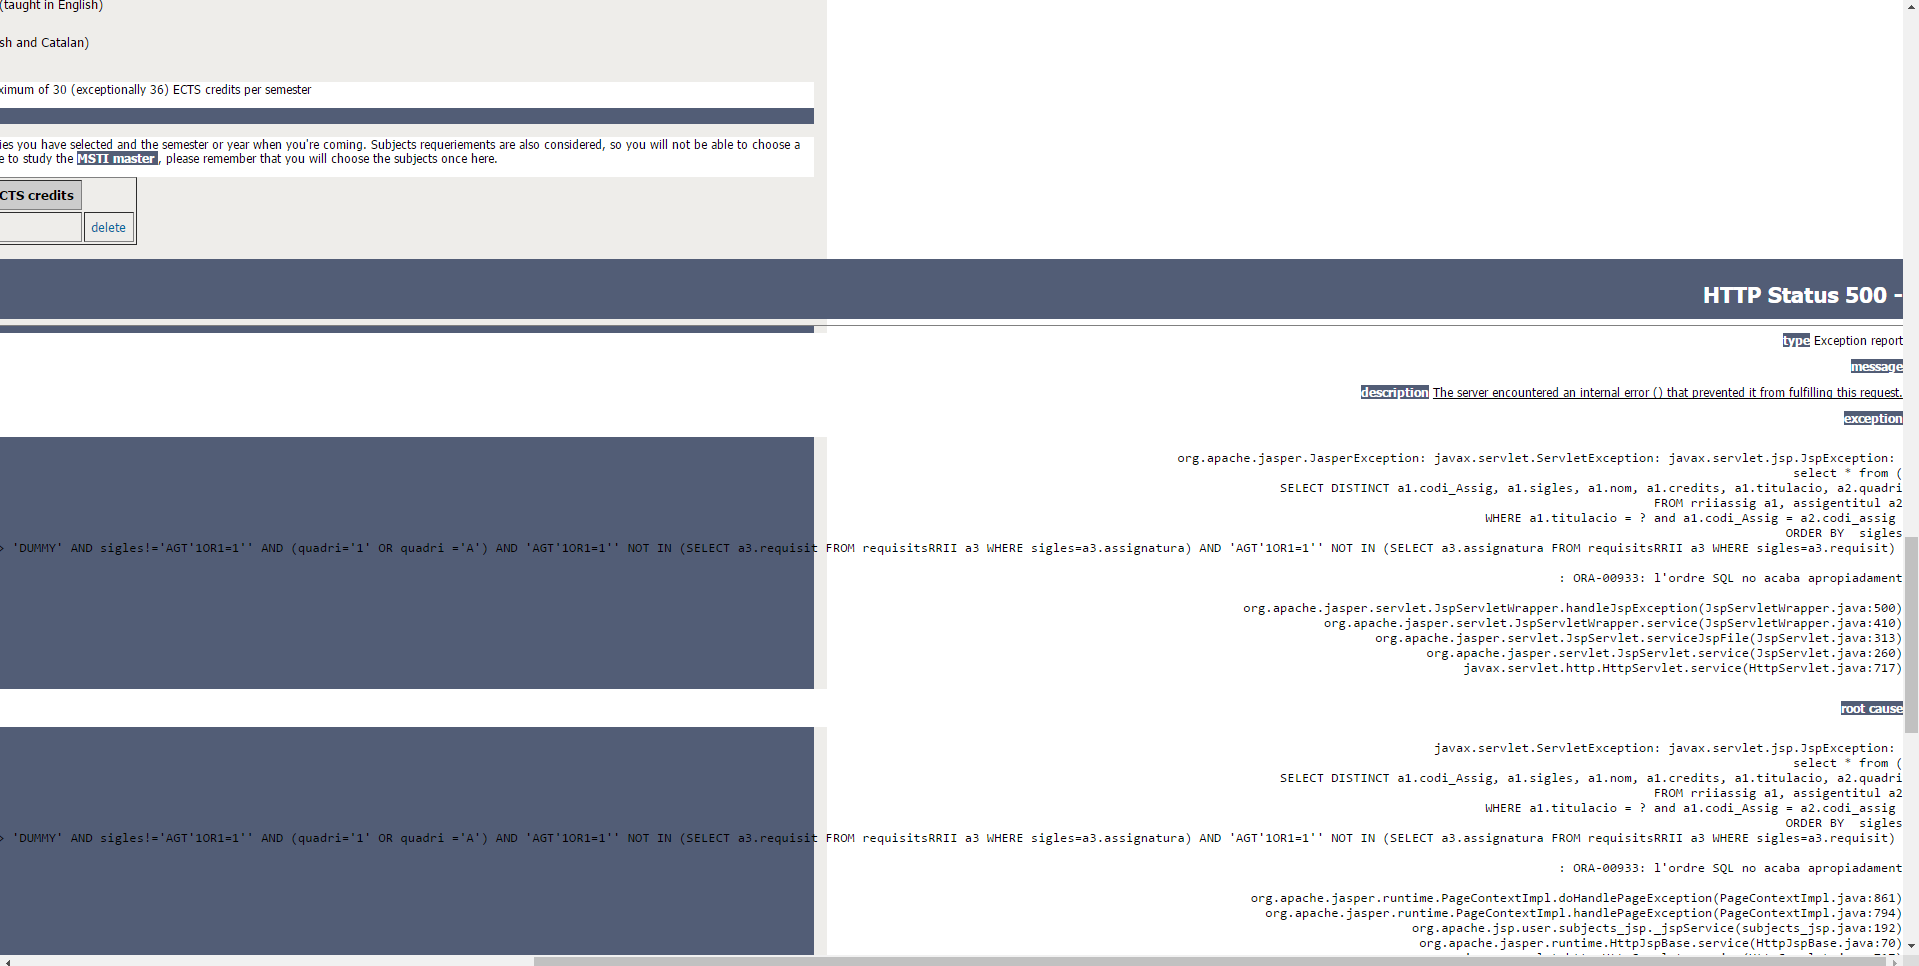 SQL Injection vulnerability test